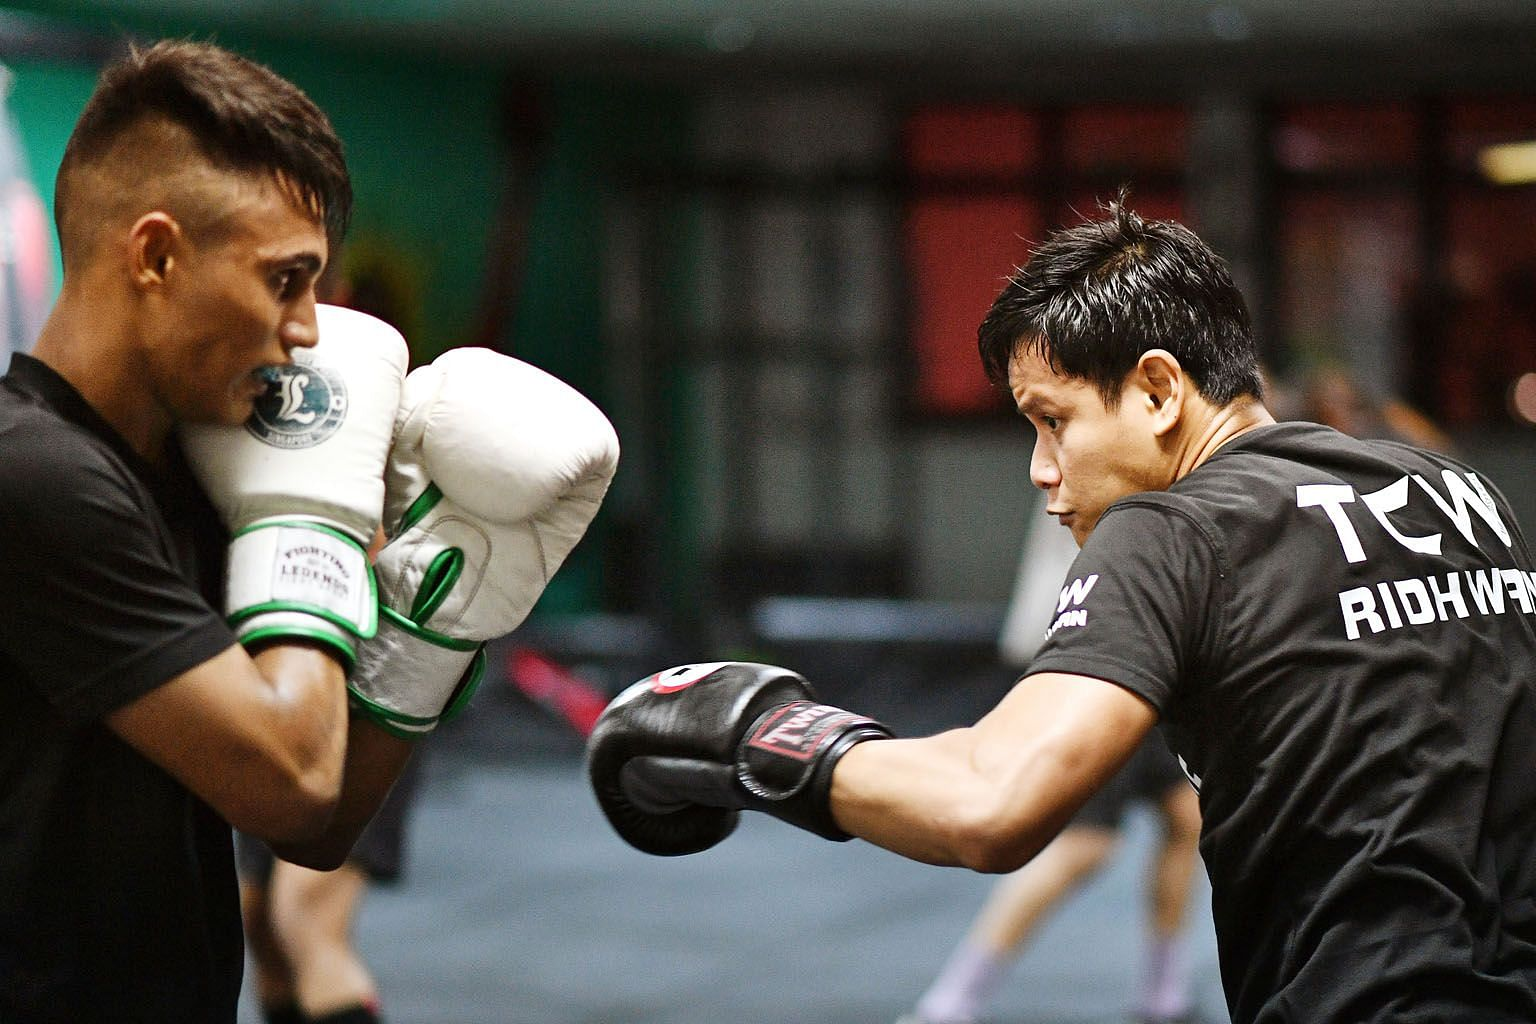 Ridhwan (right) sparring with an at-risk youth under The Chosen Wan (TCW) Cares Programme. His March 29 bout is a rematch of his split-decision loss to Namibian Paulus Ambunda last September.